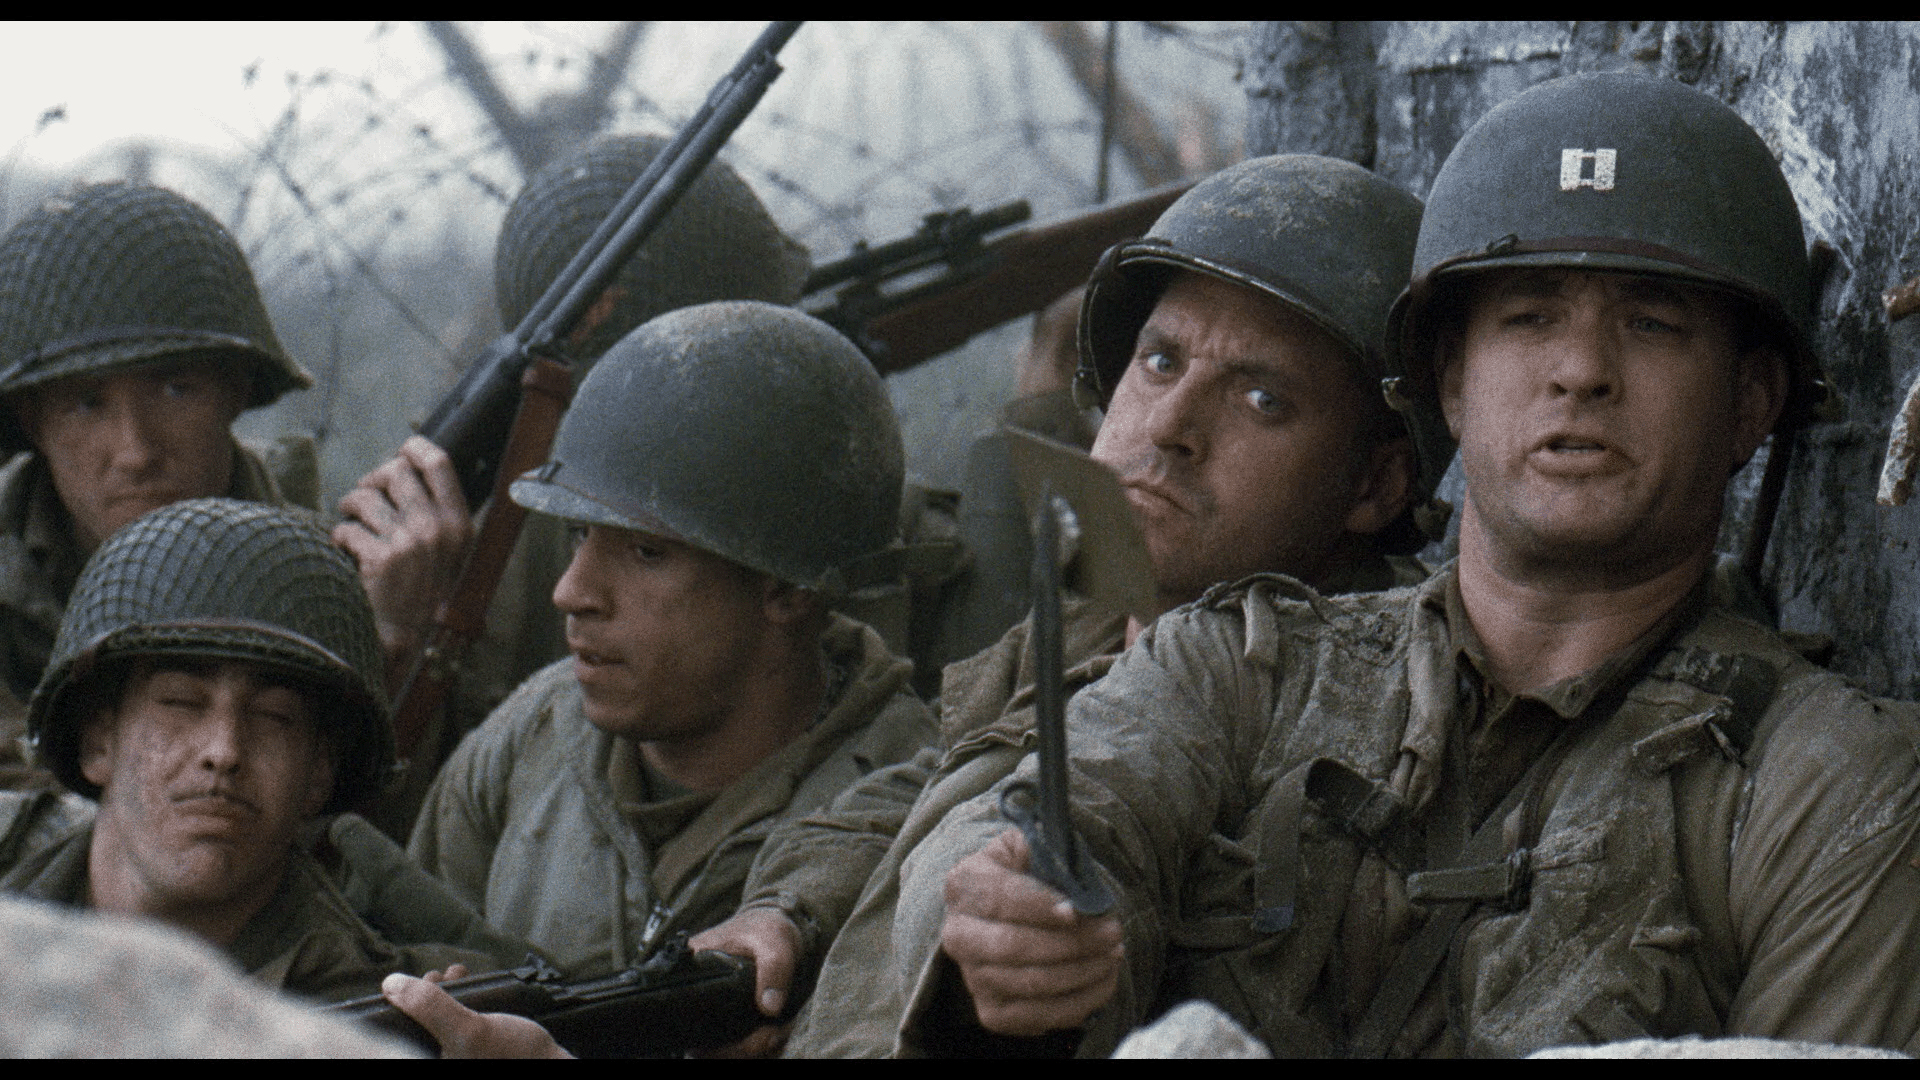 band of brothers film essay Ron livingston as lewis nixon in the why we fight episode of band of brotherswe're in our final week of looking back on band of brothers, with spoilers for the penultimate episode, why we fight, coming up just as soon.